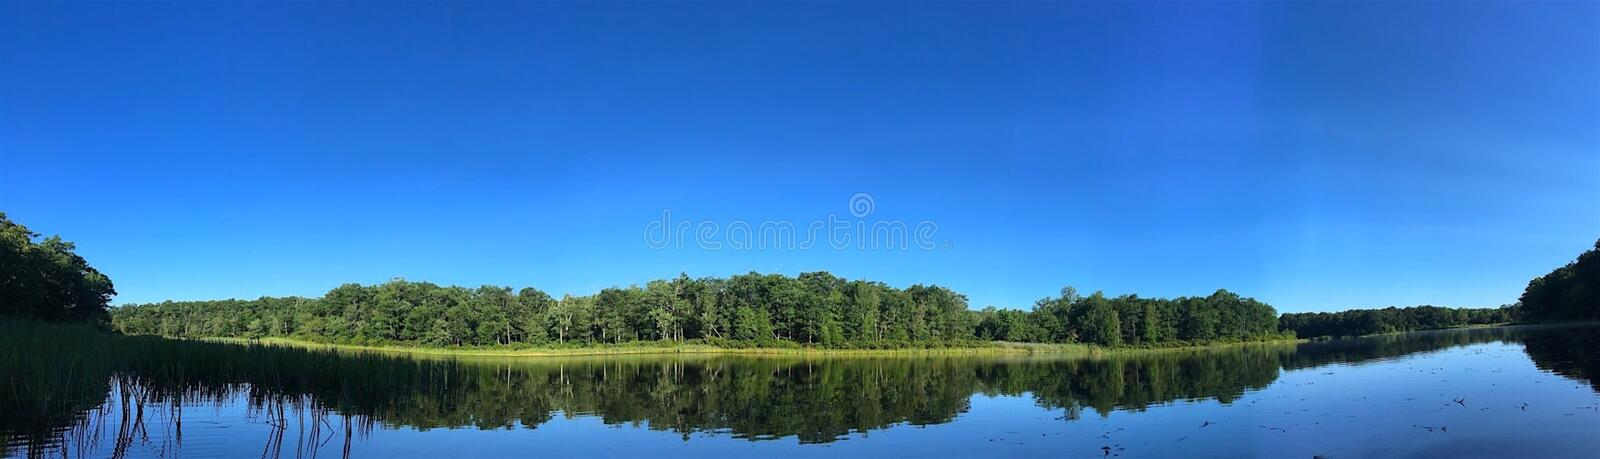 Reflection, Sky, Nature, Water Free Public Domain Cc0 Image